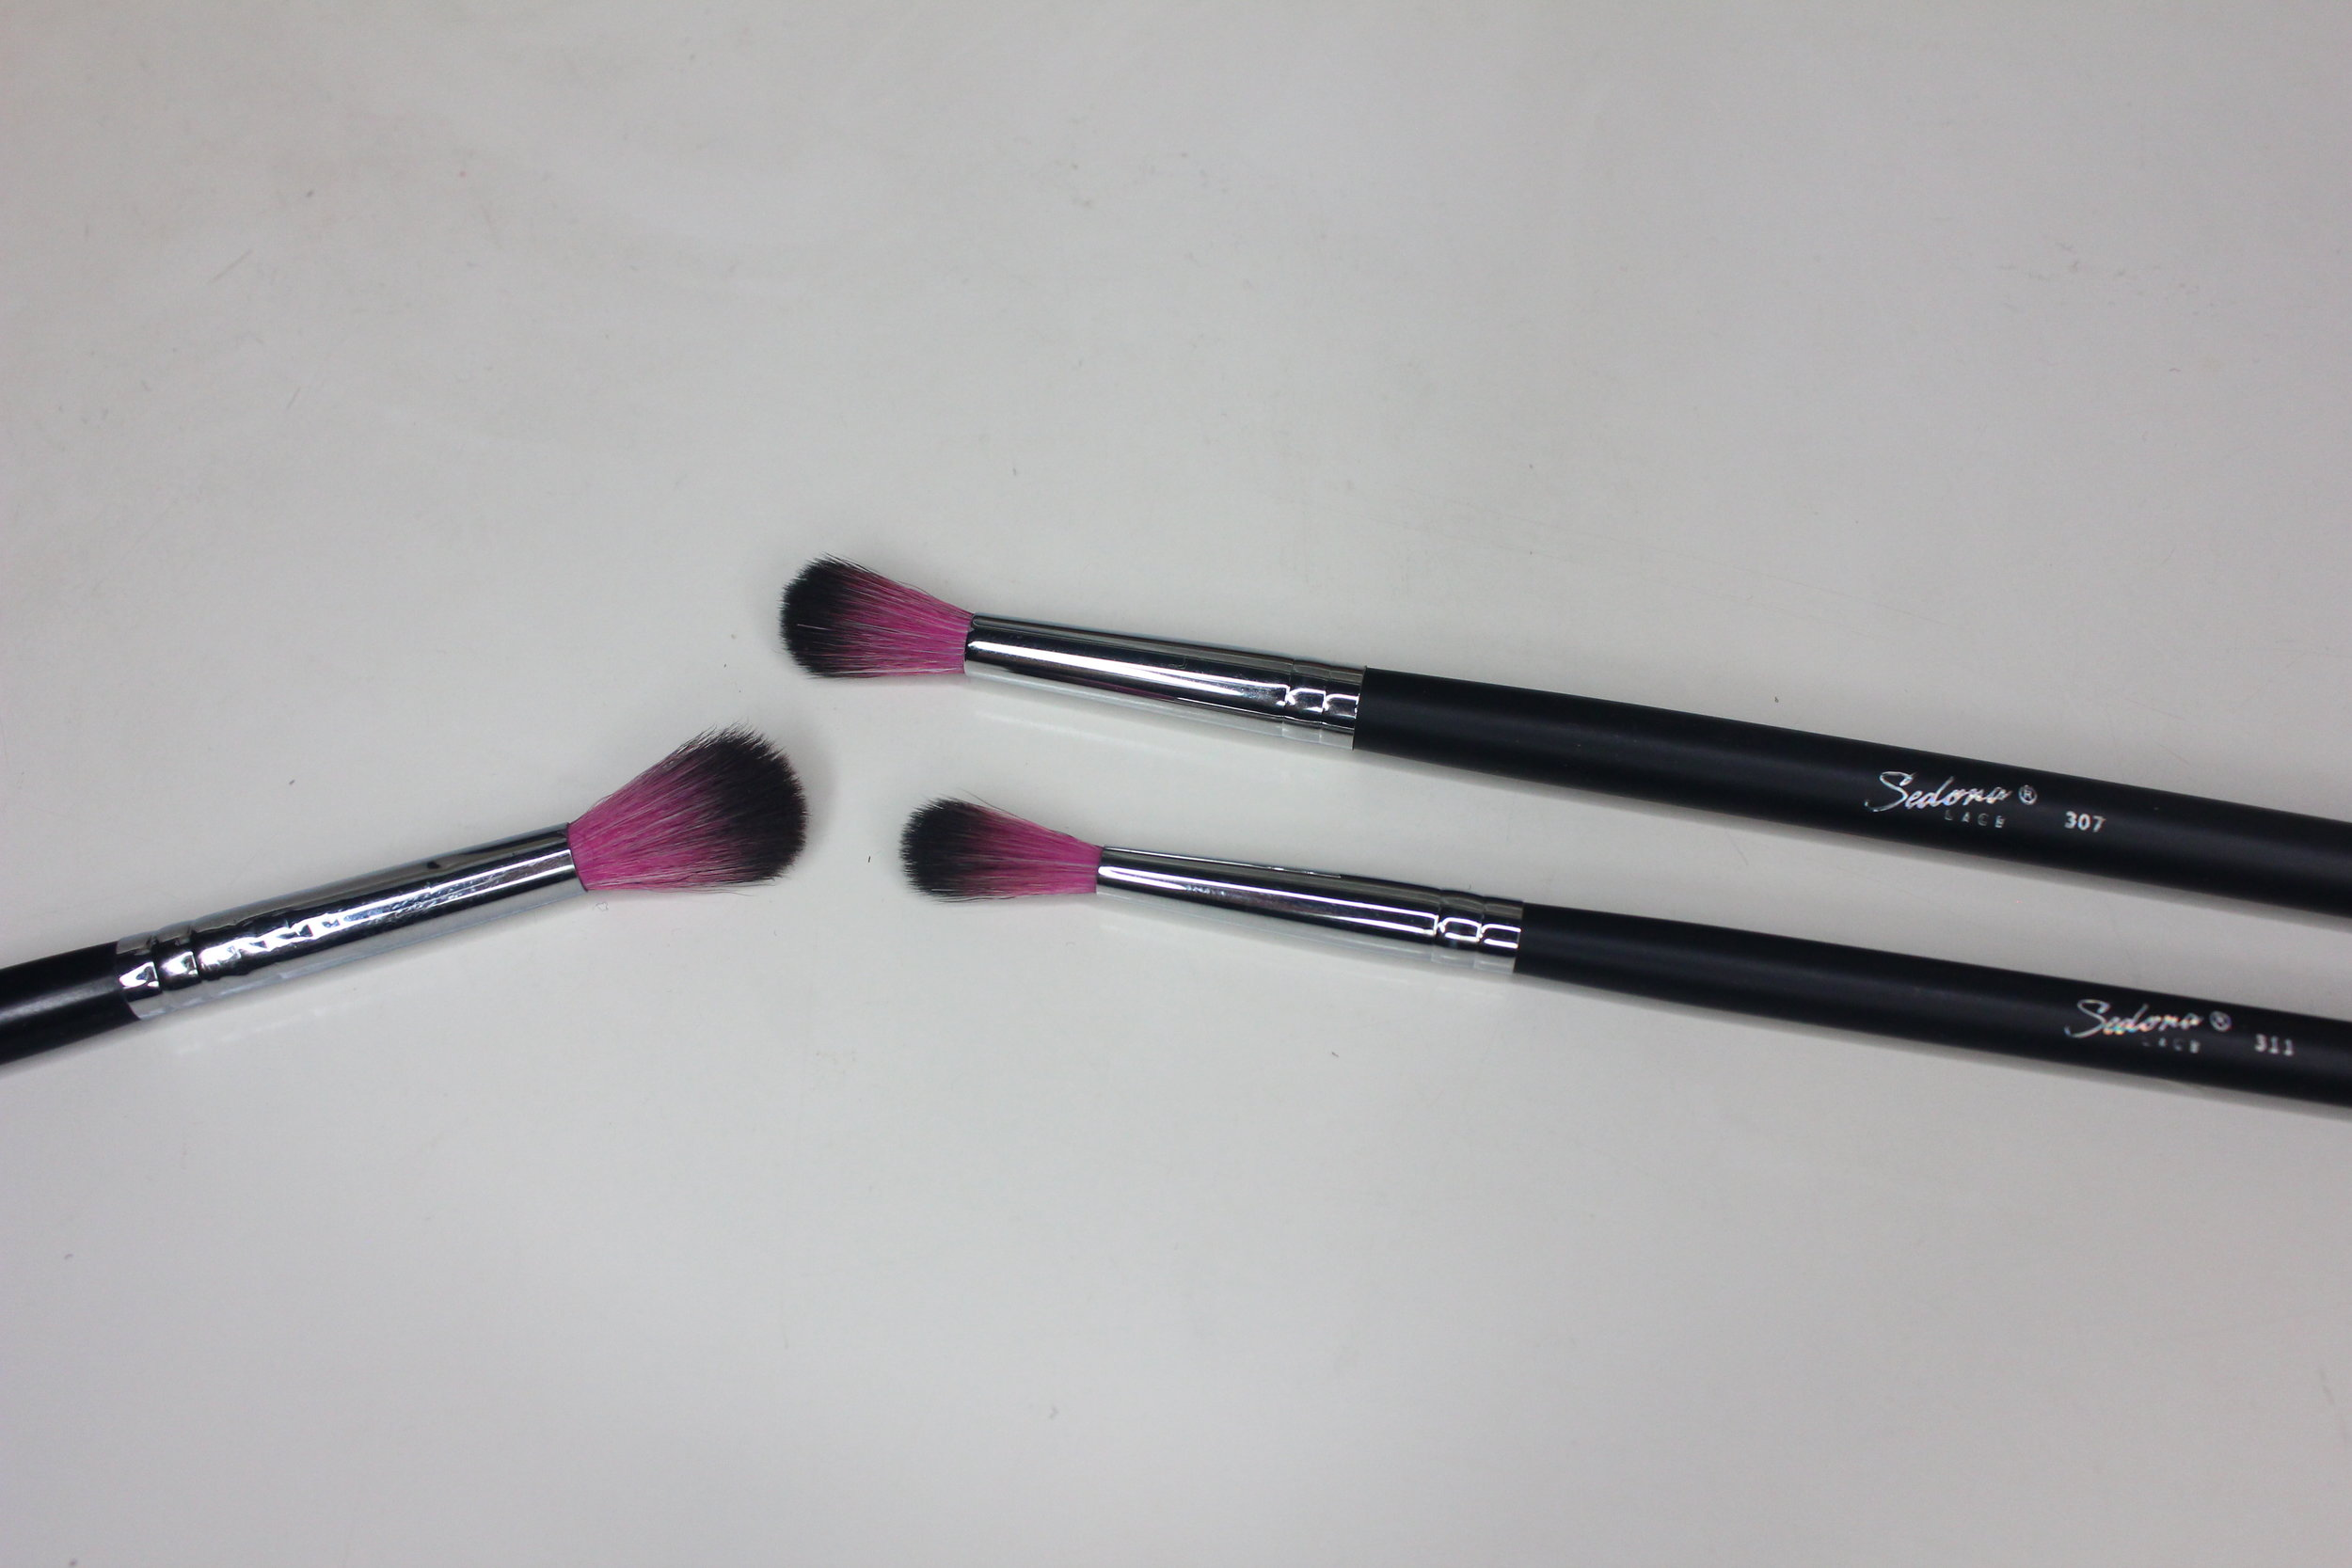 Sedona Lace PrettyLilMzGrace brush set - 311 brush